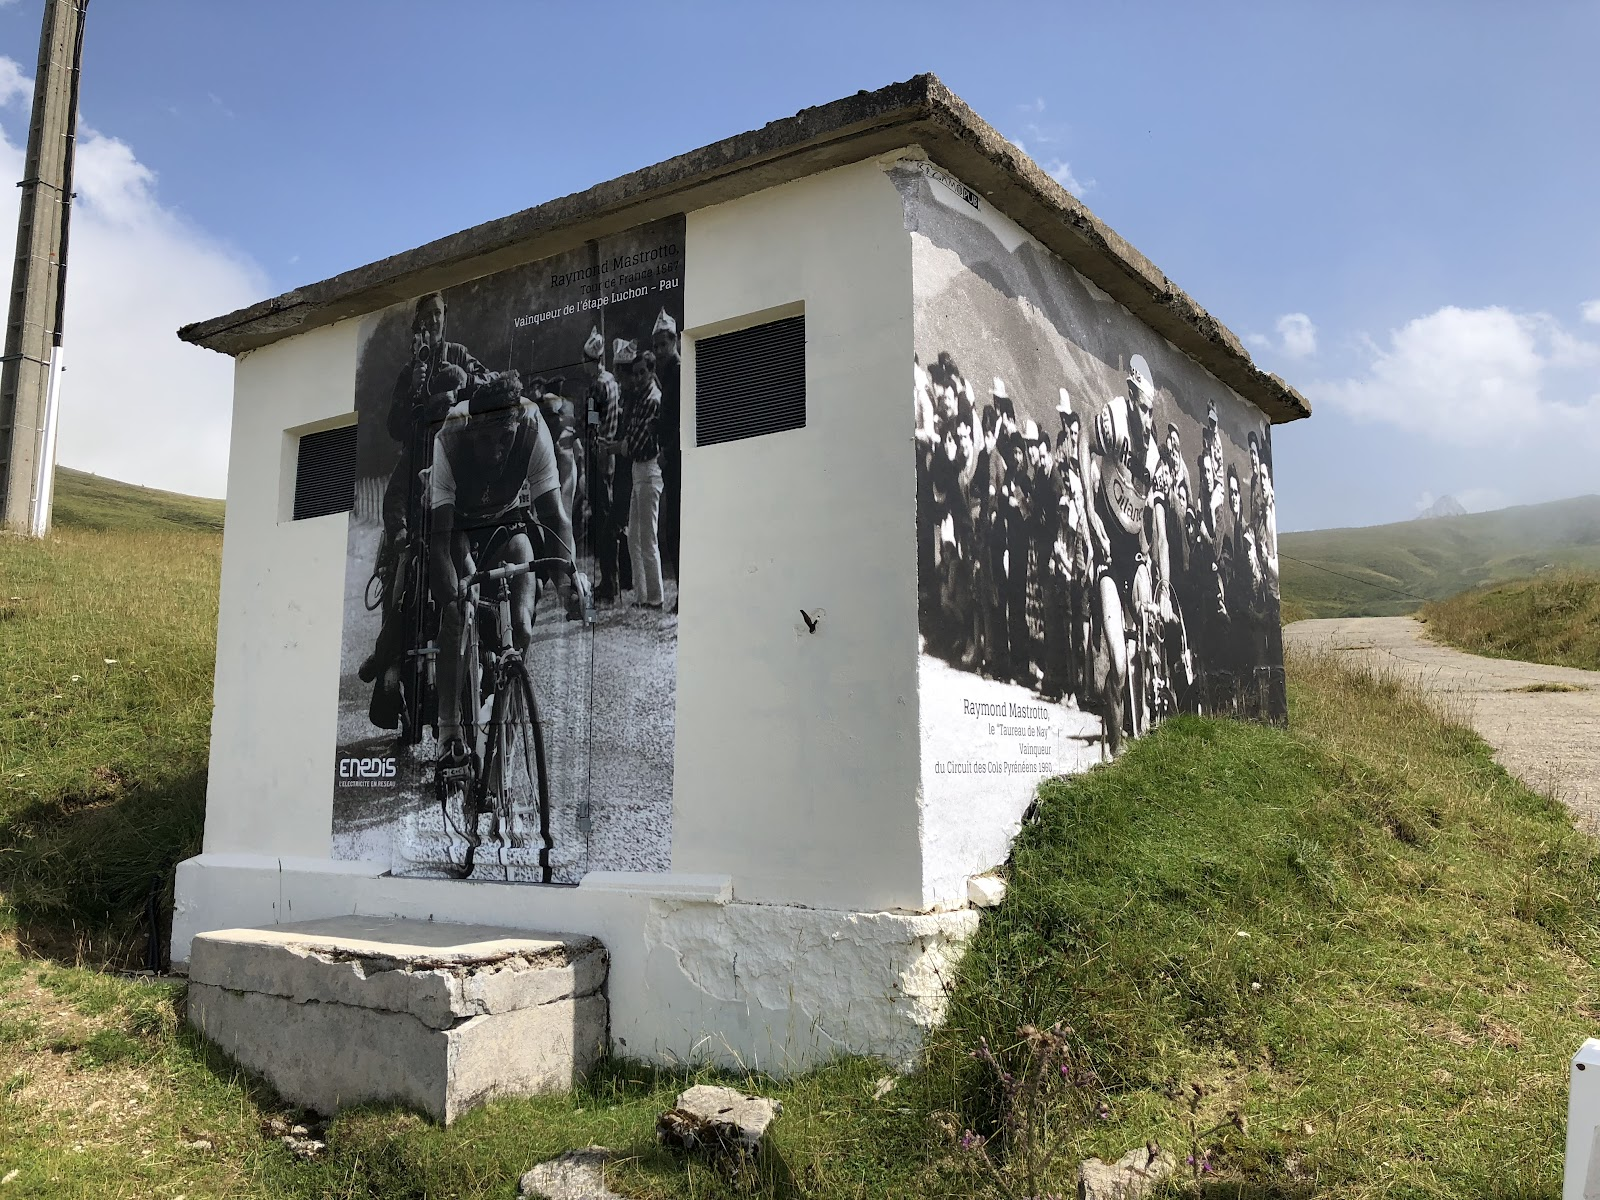 Bicycle ride up Col d'Aubisque  from Argeles Gazost - building with Tour de France photos on it